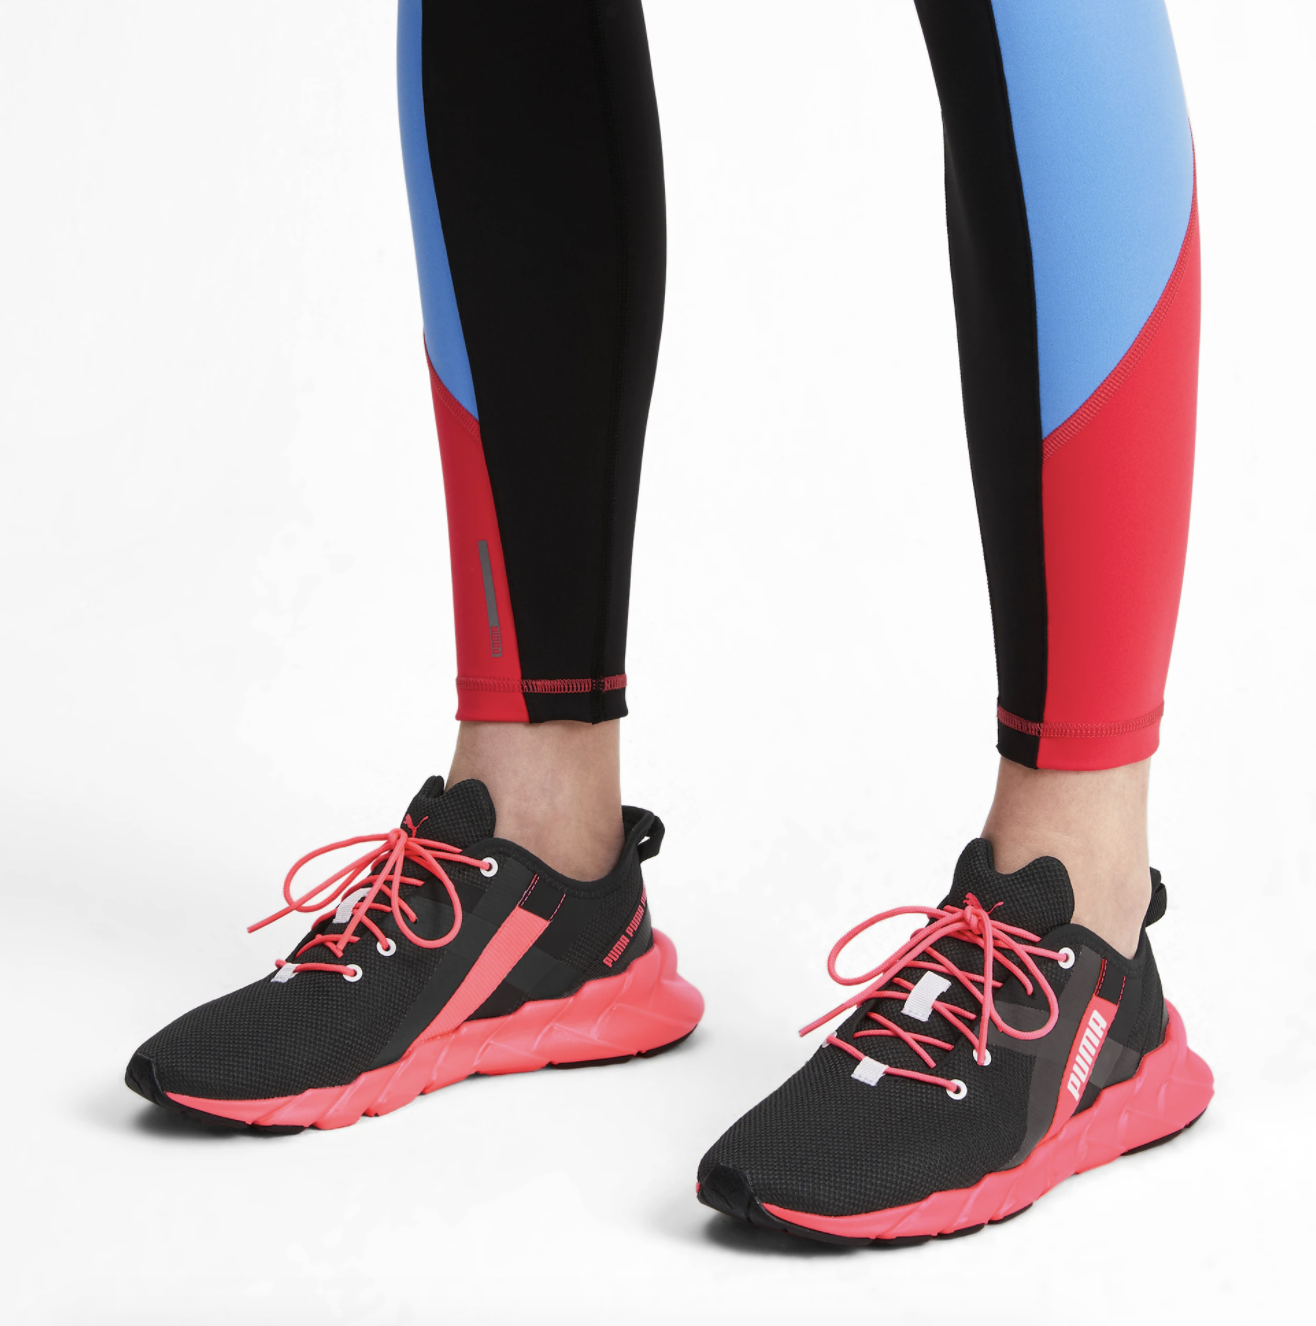 Model wears black and pink Puma training shoes with red, black, and blue striped leggings